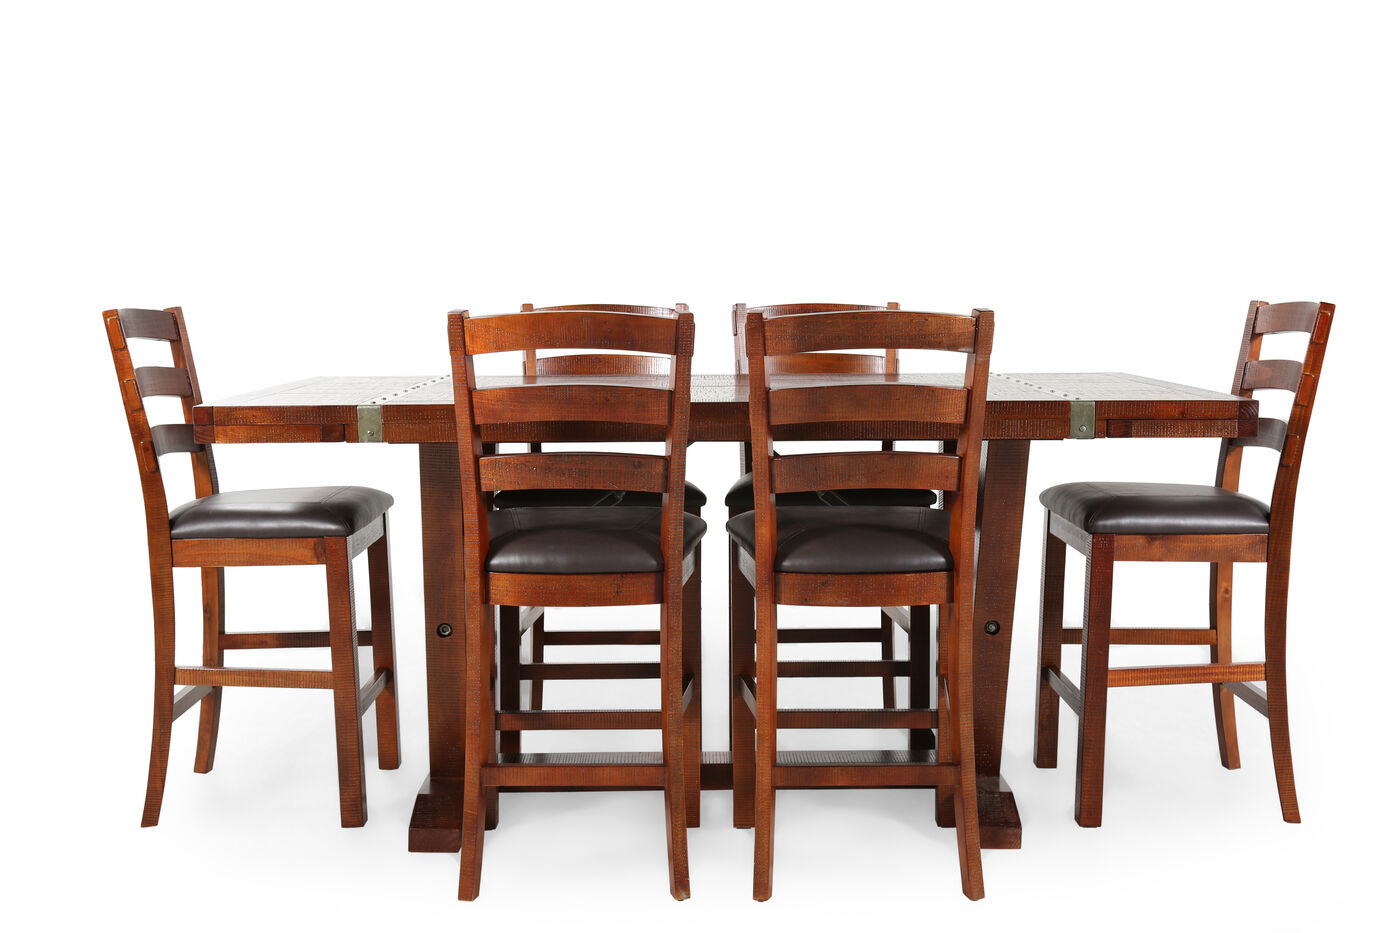 Small dining table discount furniture ta piece small for High chair dining table set